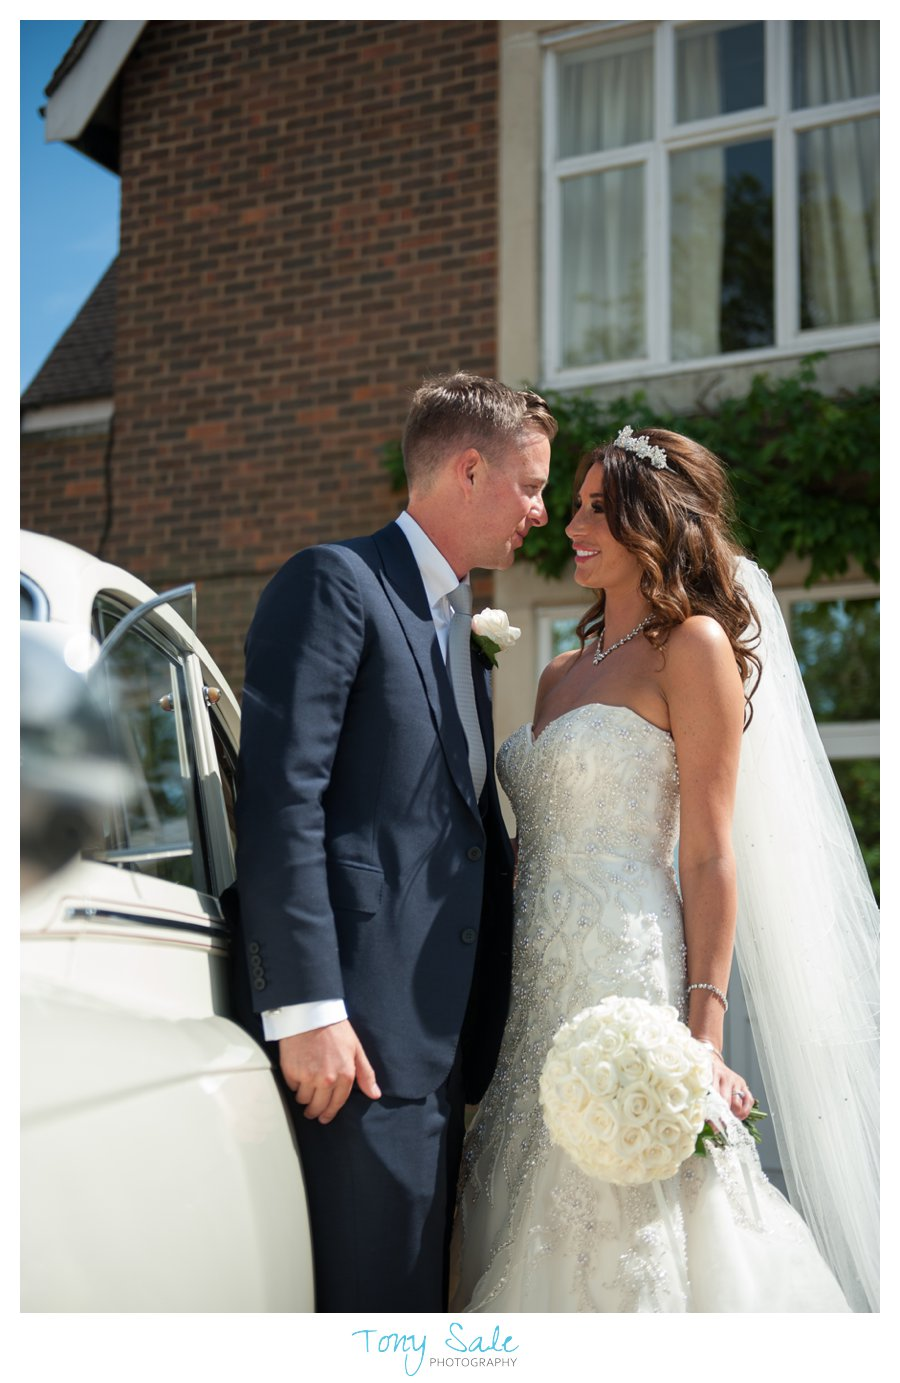 Cassandra & Edward's Amazing Wedding at Pontlands Park